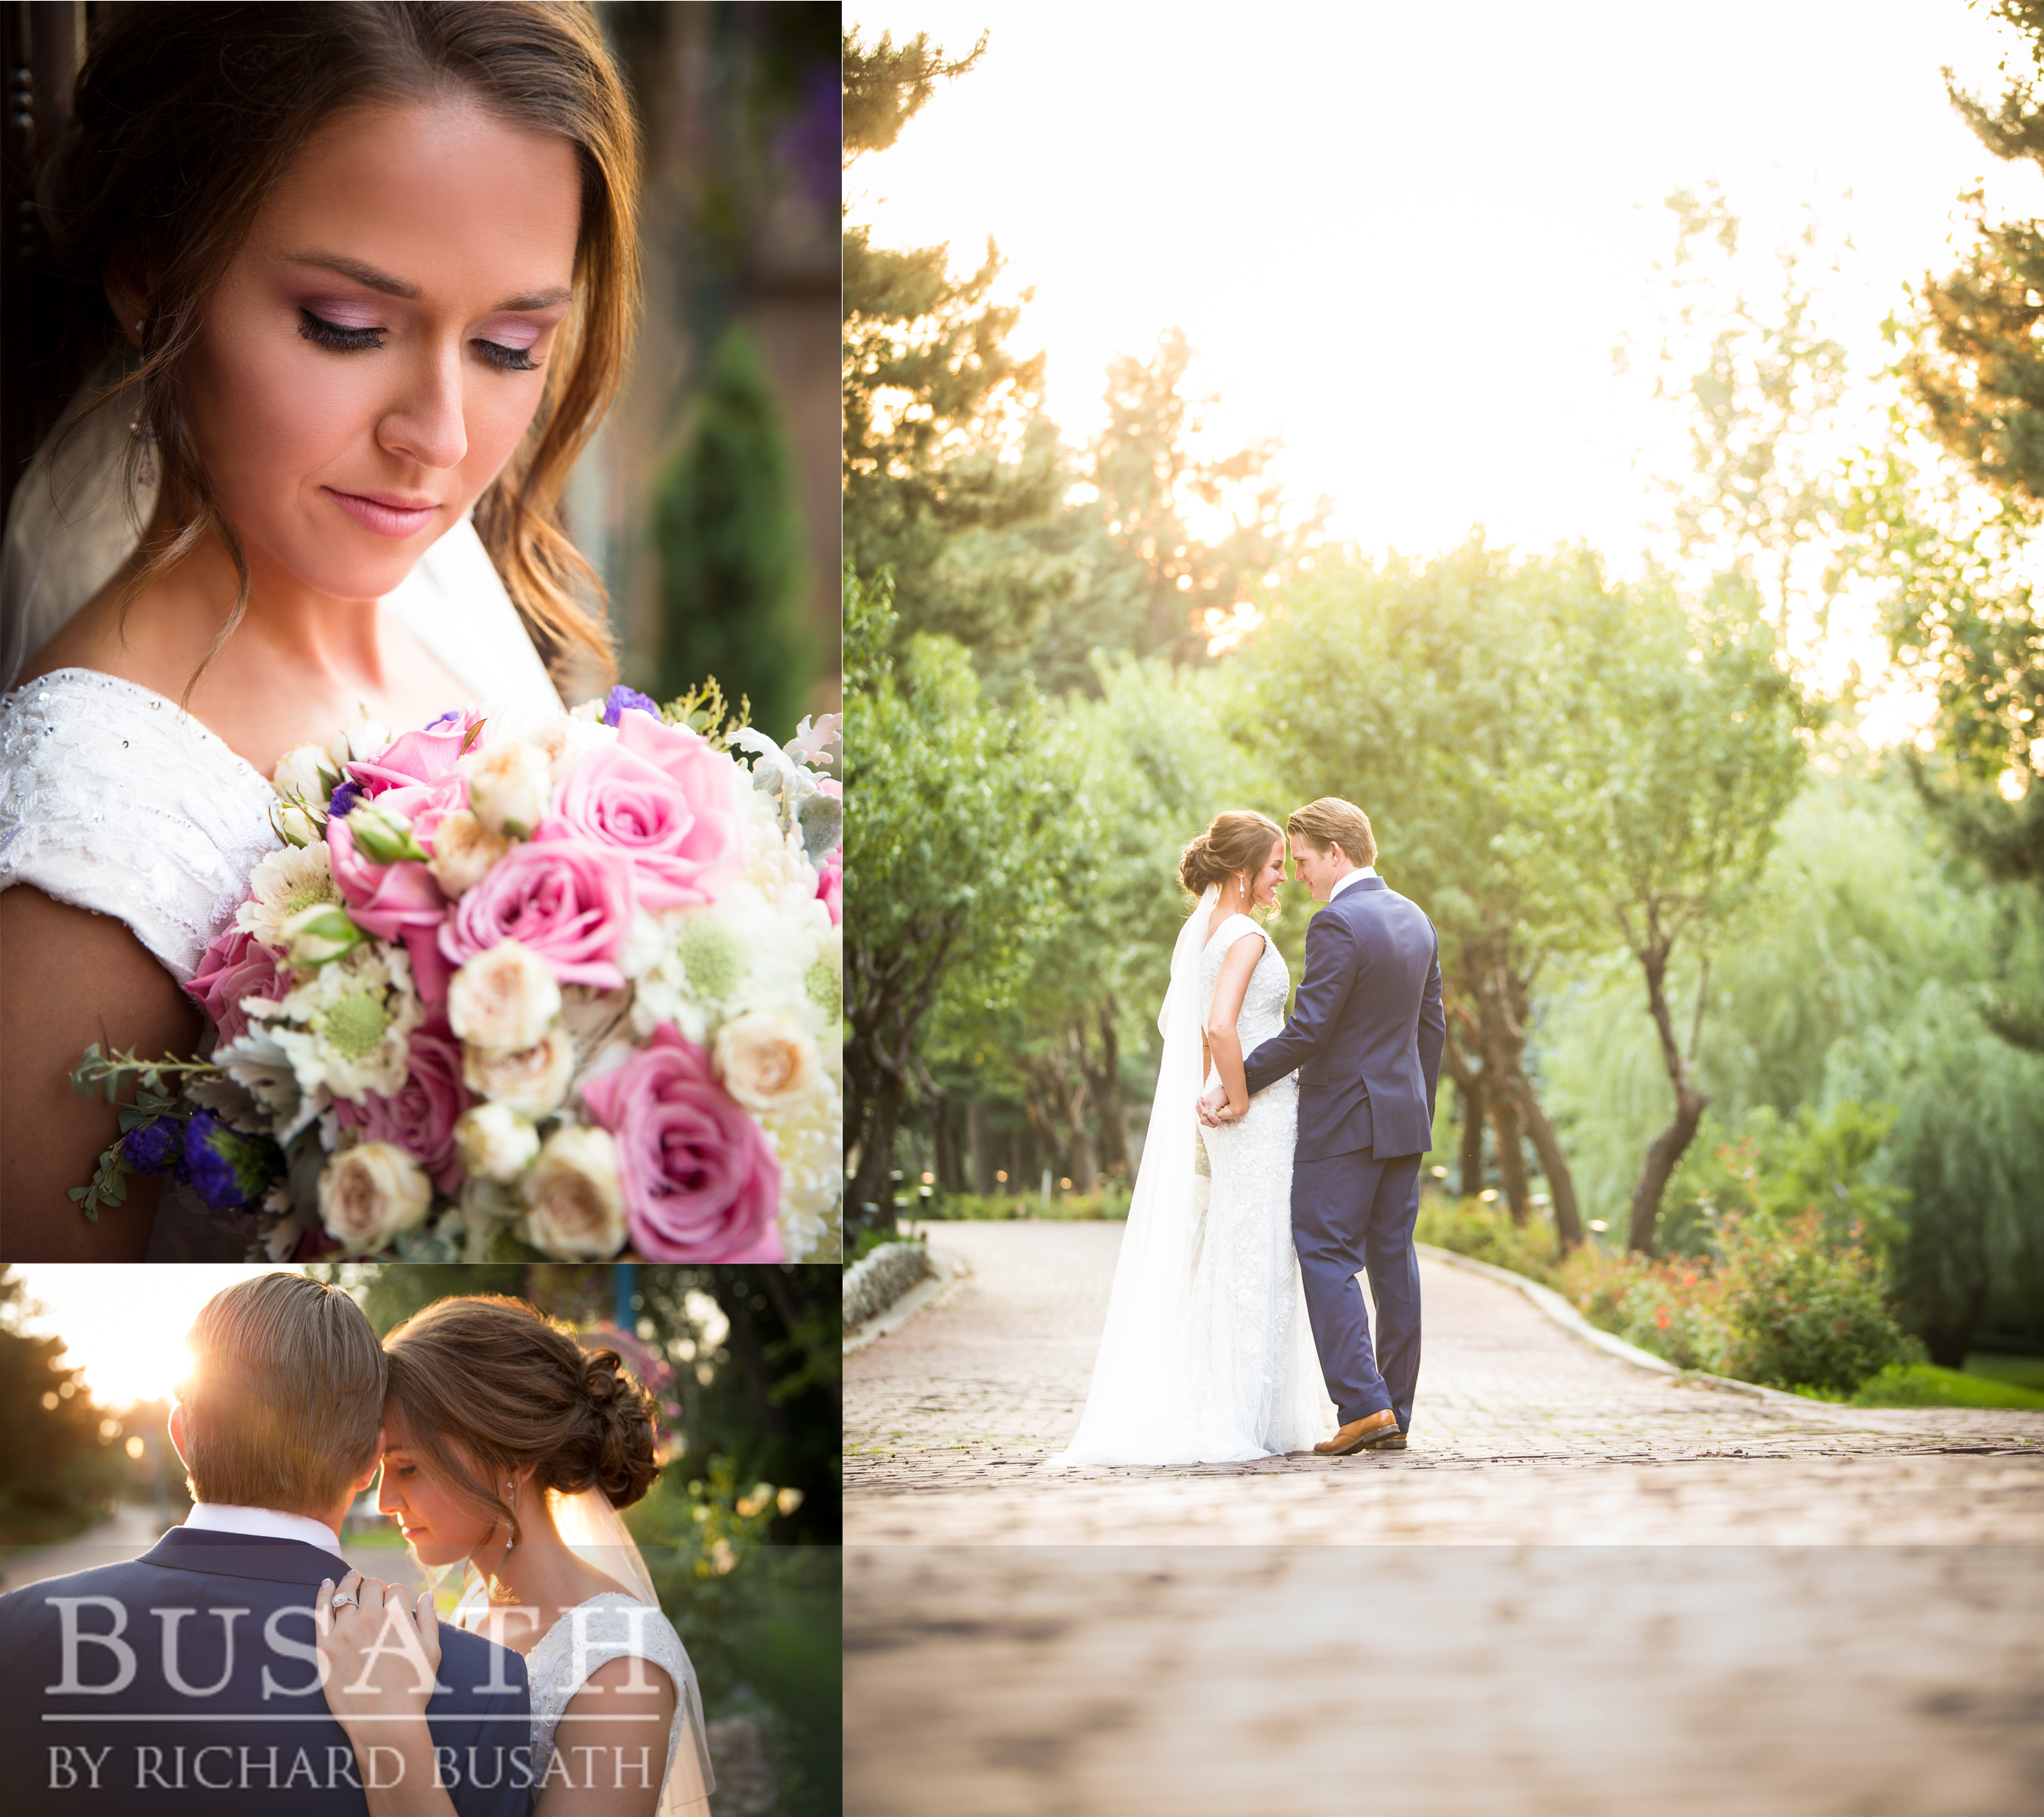 Bridal Photographer, Salt Lake City UT